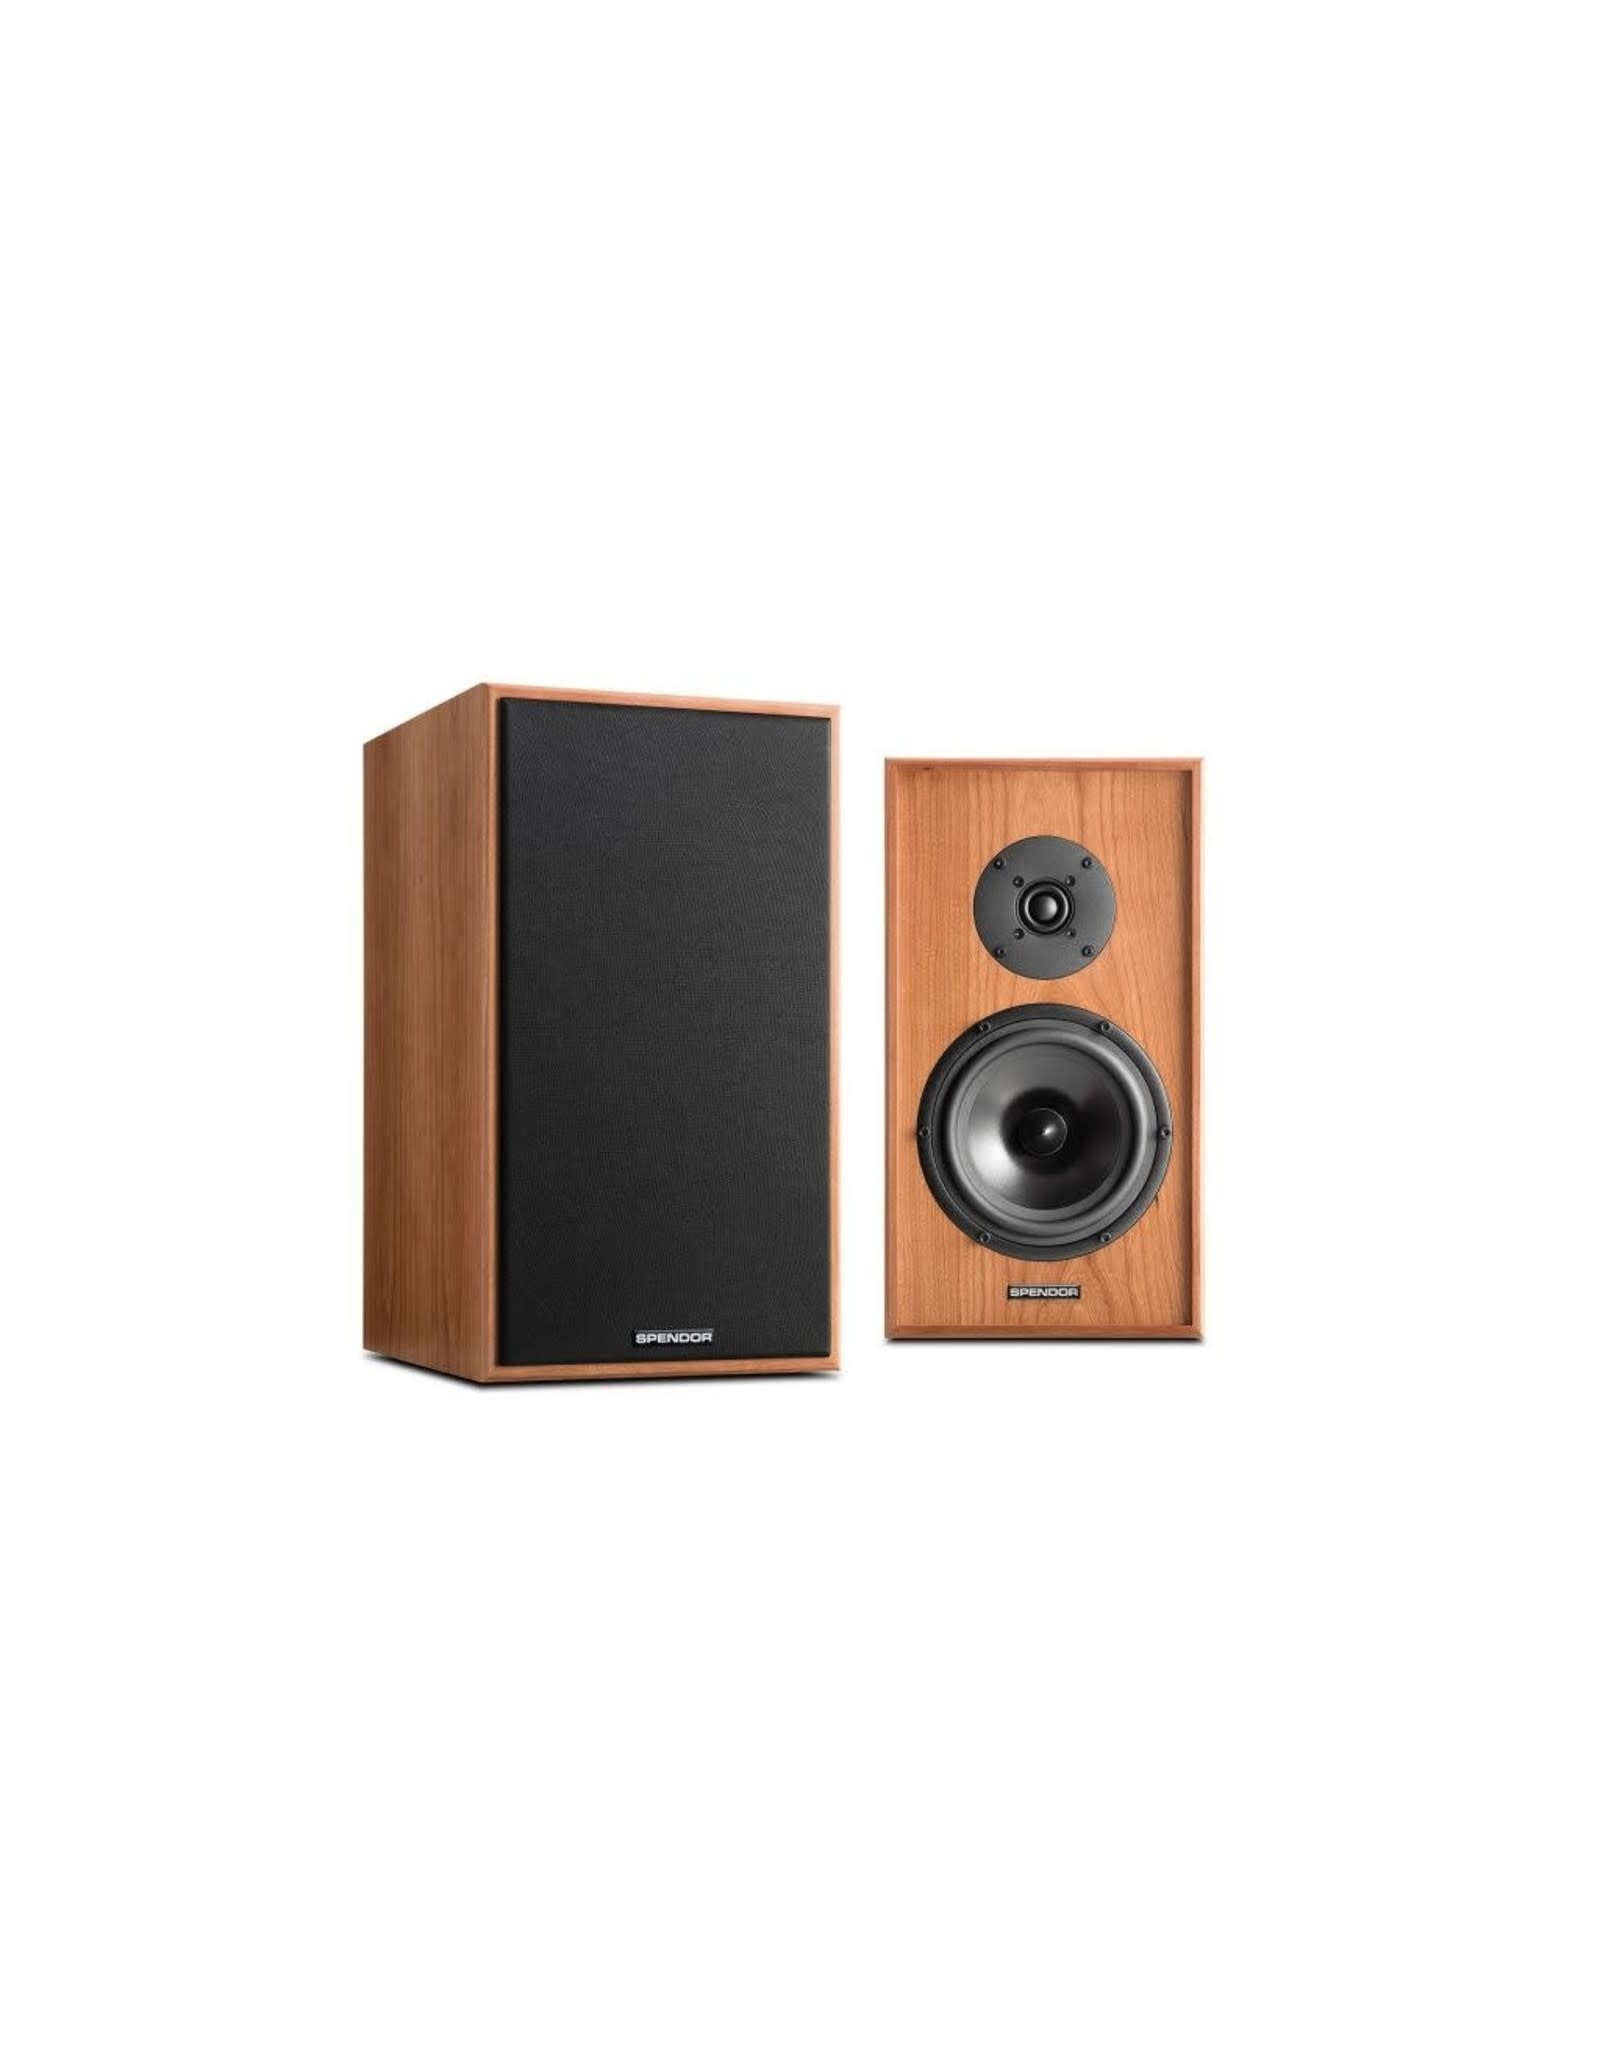 Spendor Spendor Classic 3/1 Bookshelf Speakers Cherry EX-DEMO (NOT USED)